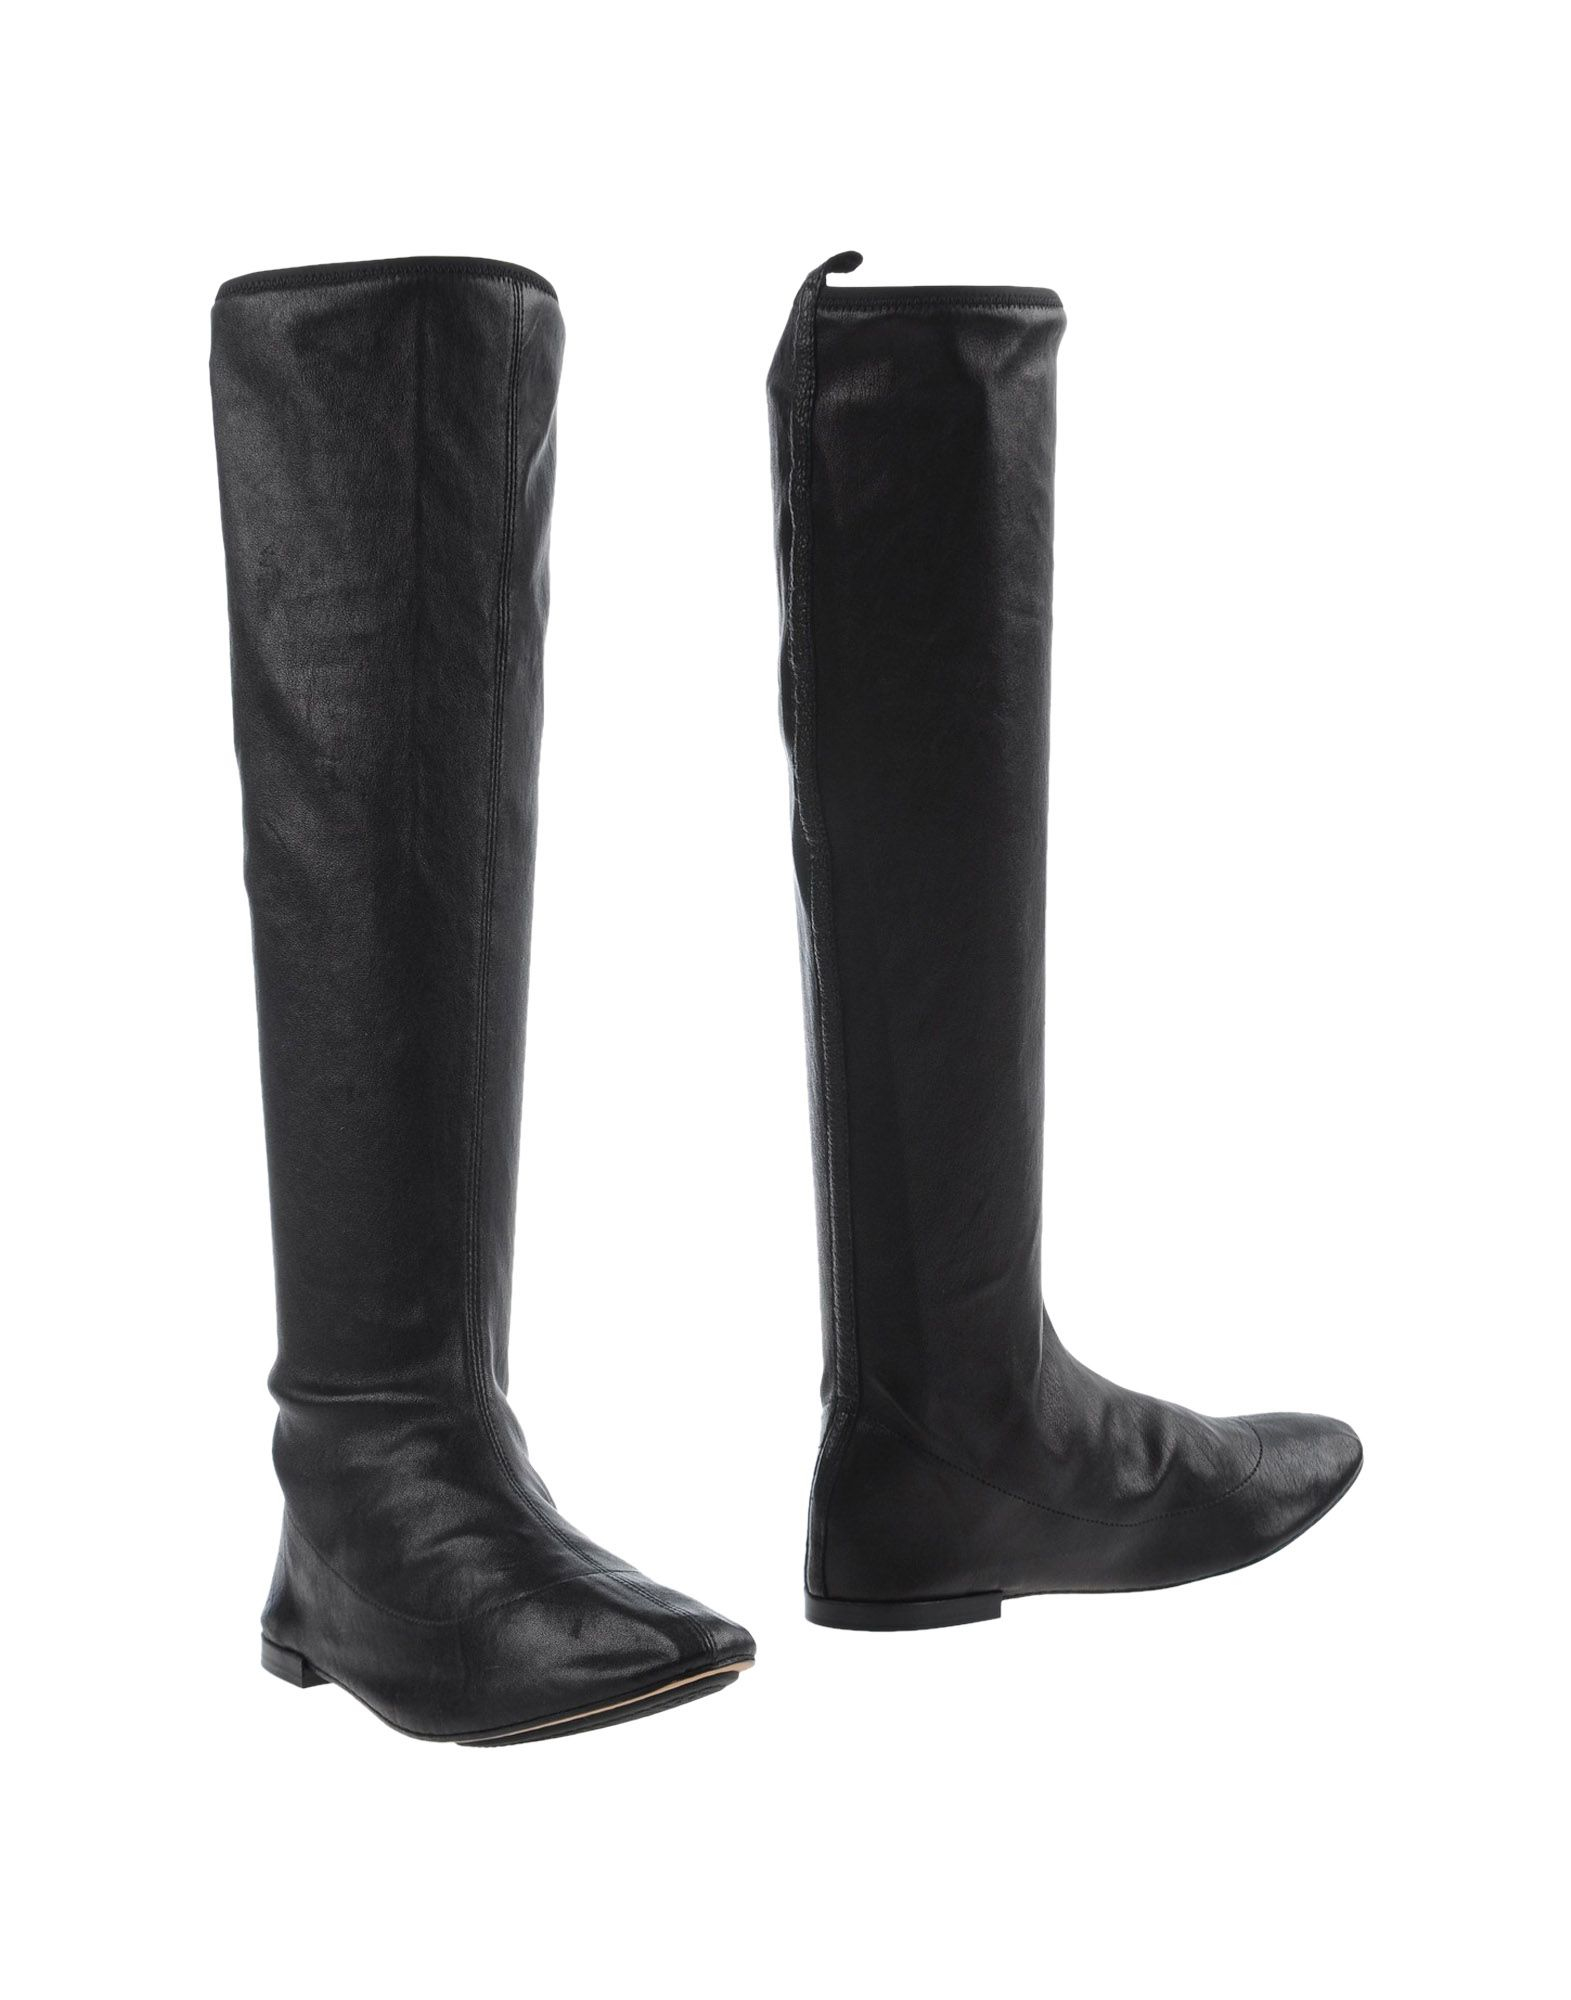 Repetto Leather Knee-High Boots wholesale price sale online sneakernews sale online cheap real authentic shop for online ebay cheap online pecjnWAnK